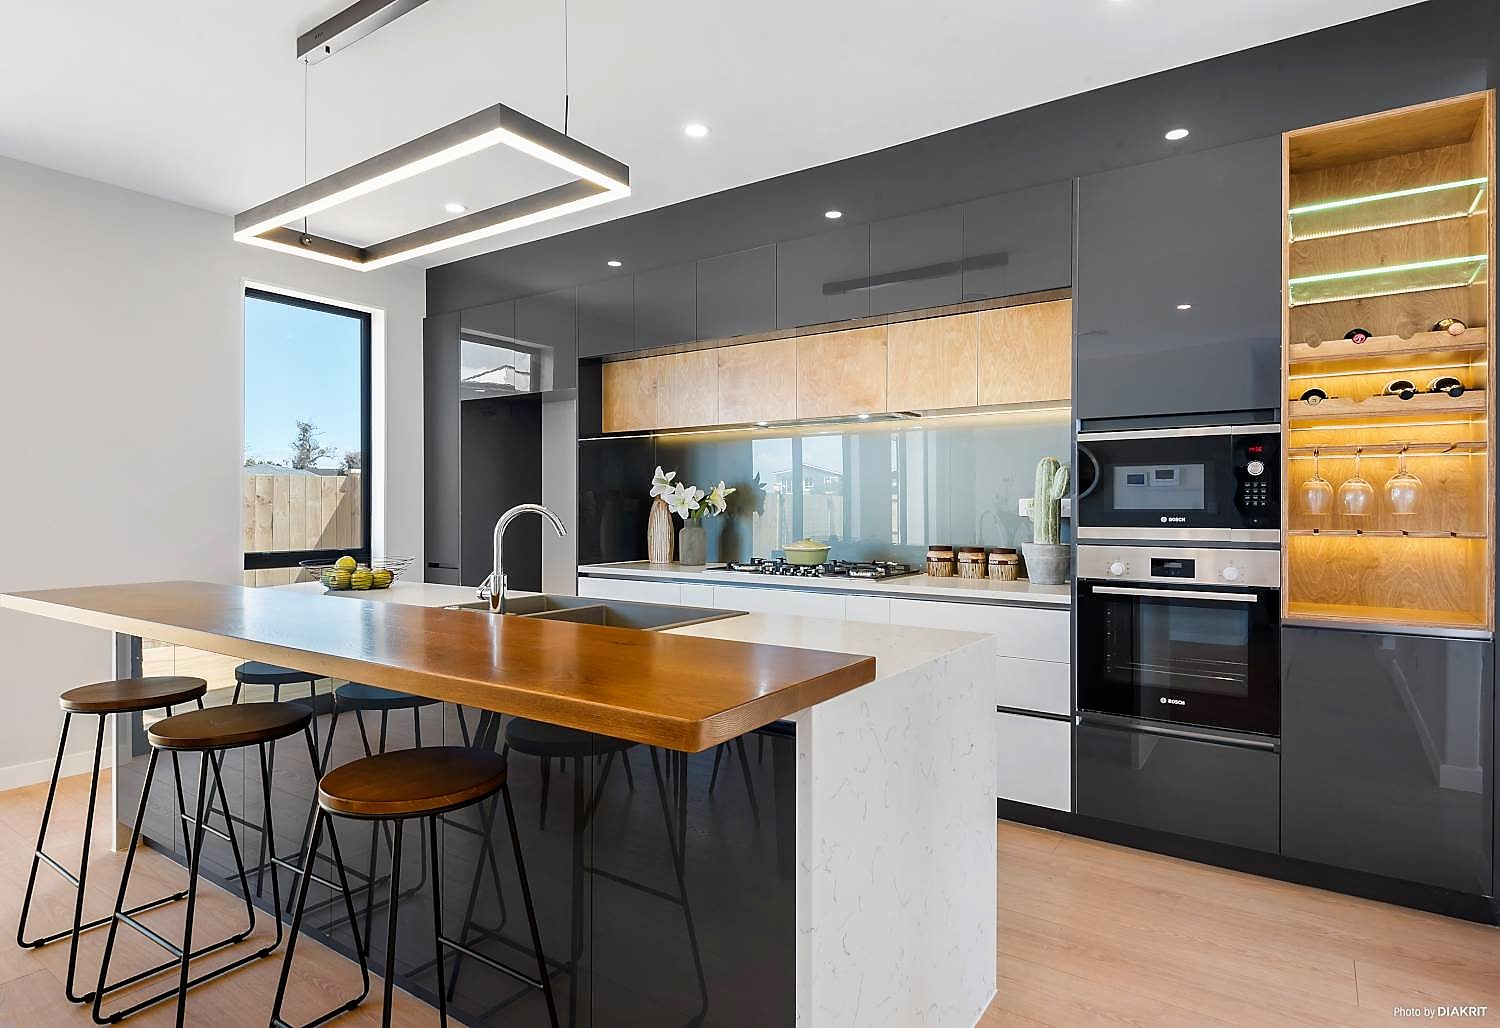 Hobsonville S Kitchen Gj Kitchens Auckland Kitchens